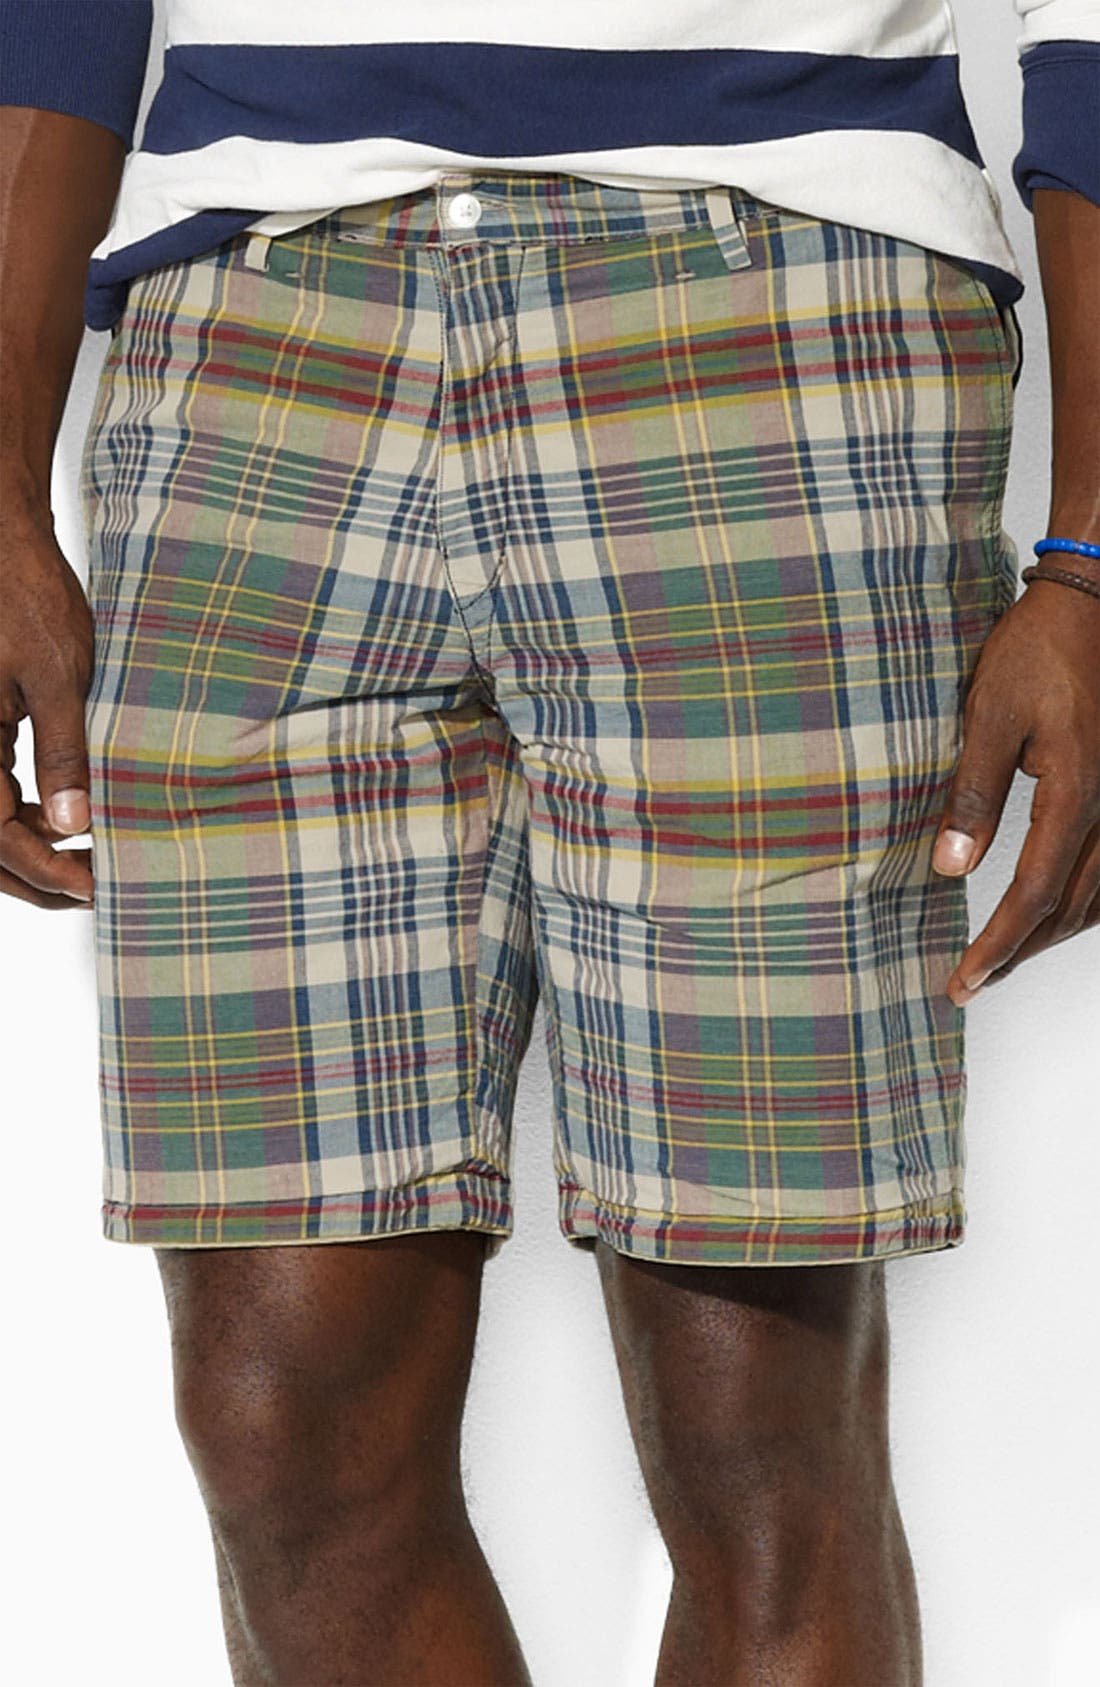 Alternate Image 1 Selected - Polo Ralph Lauren 'Country Club' Reversible Shorts